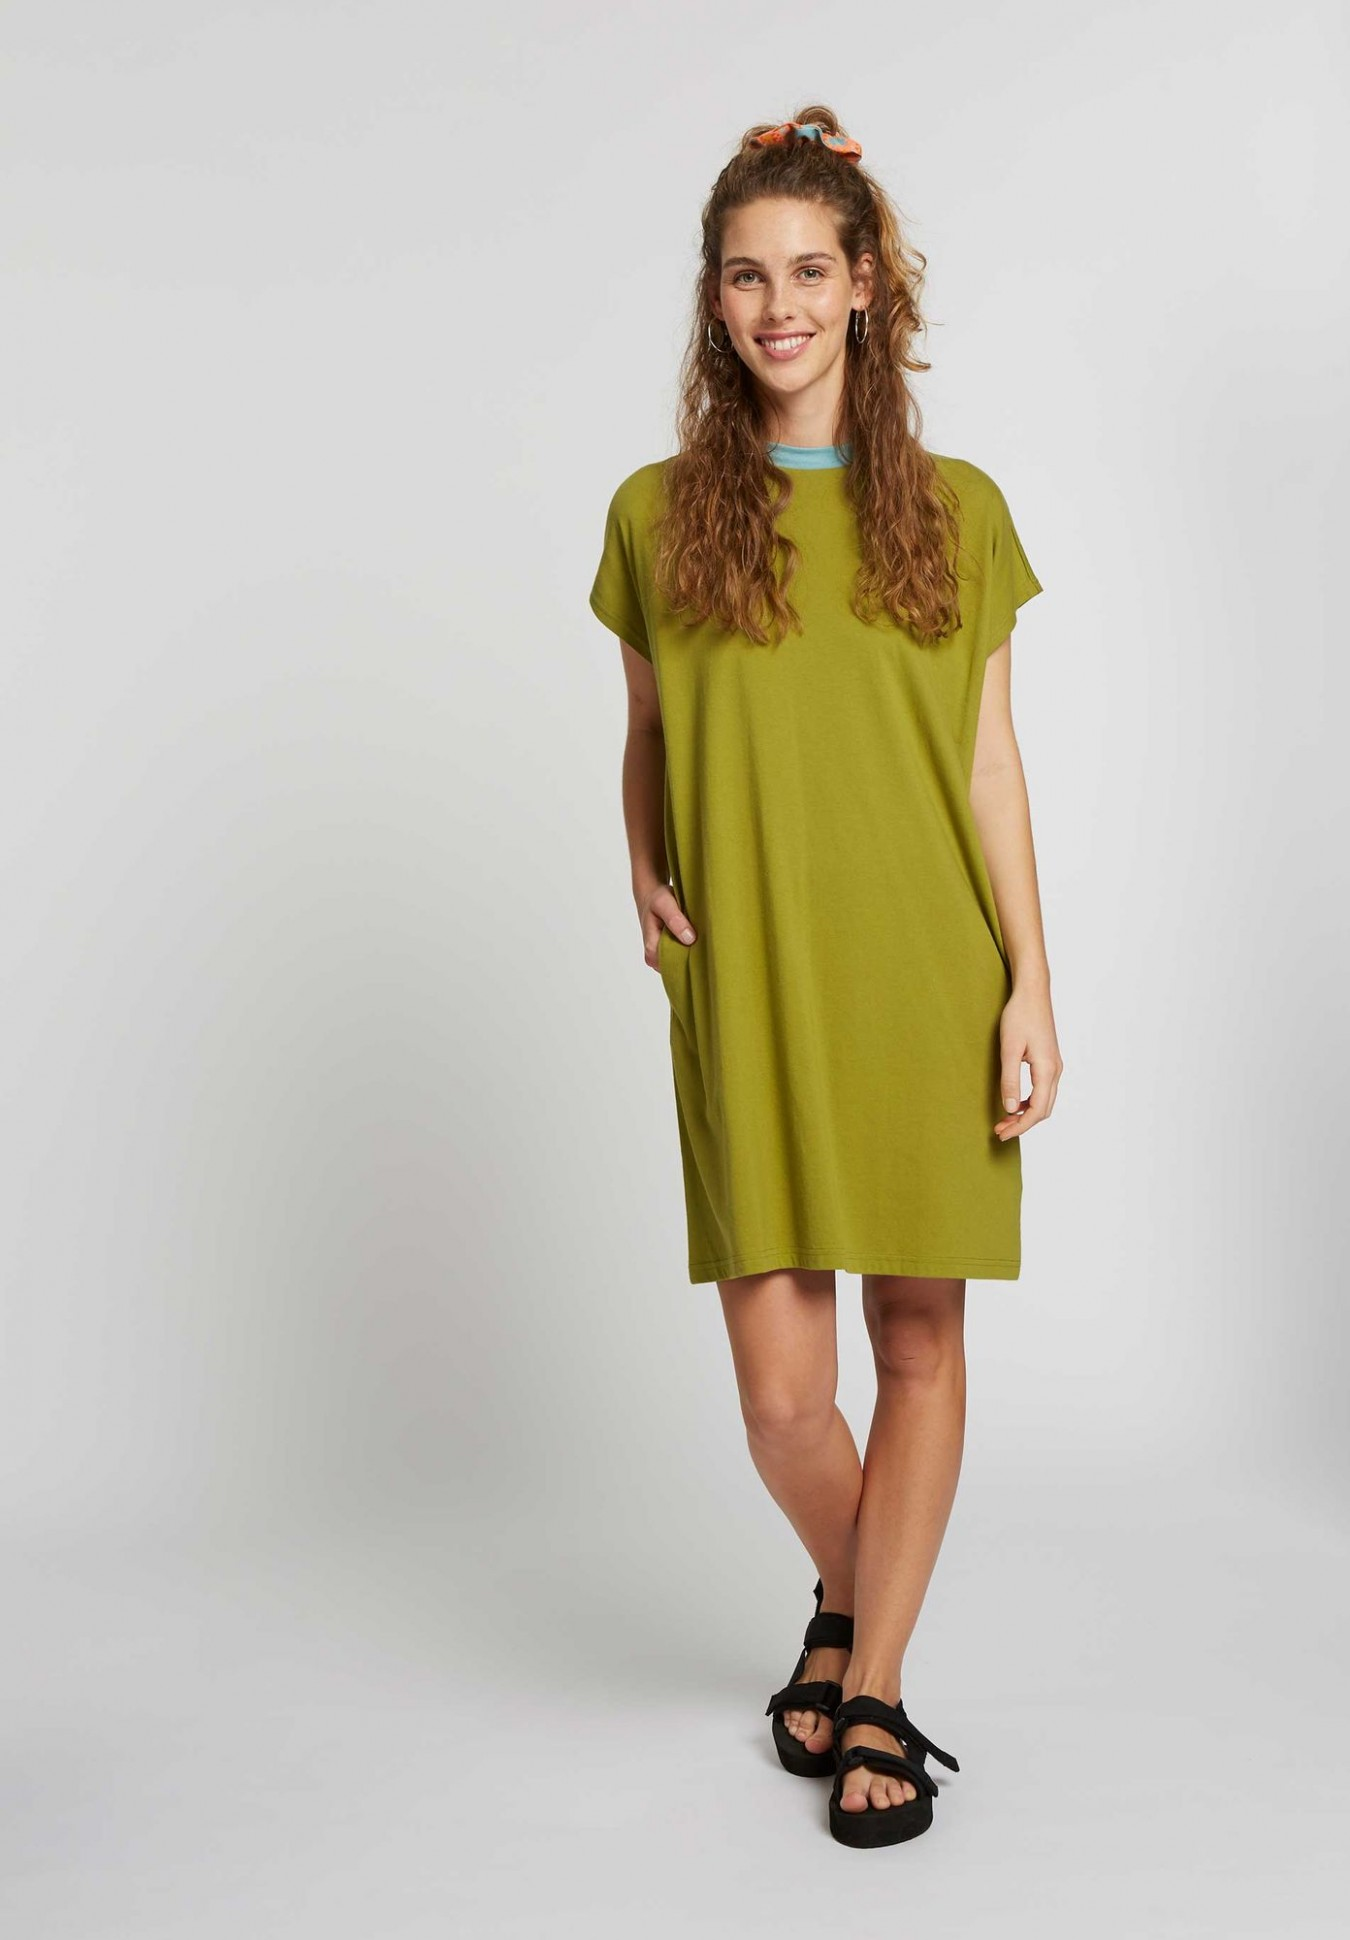 tt10 boxy shirt dress fairtrade kleider